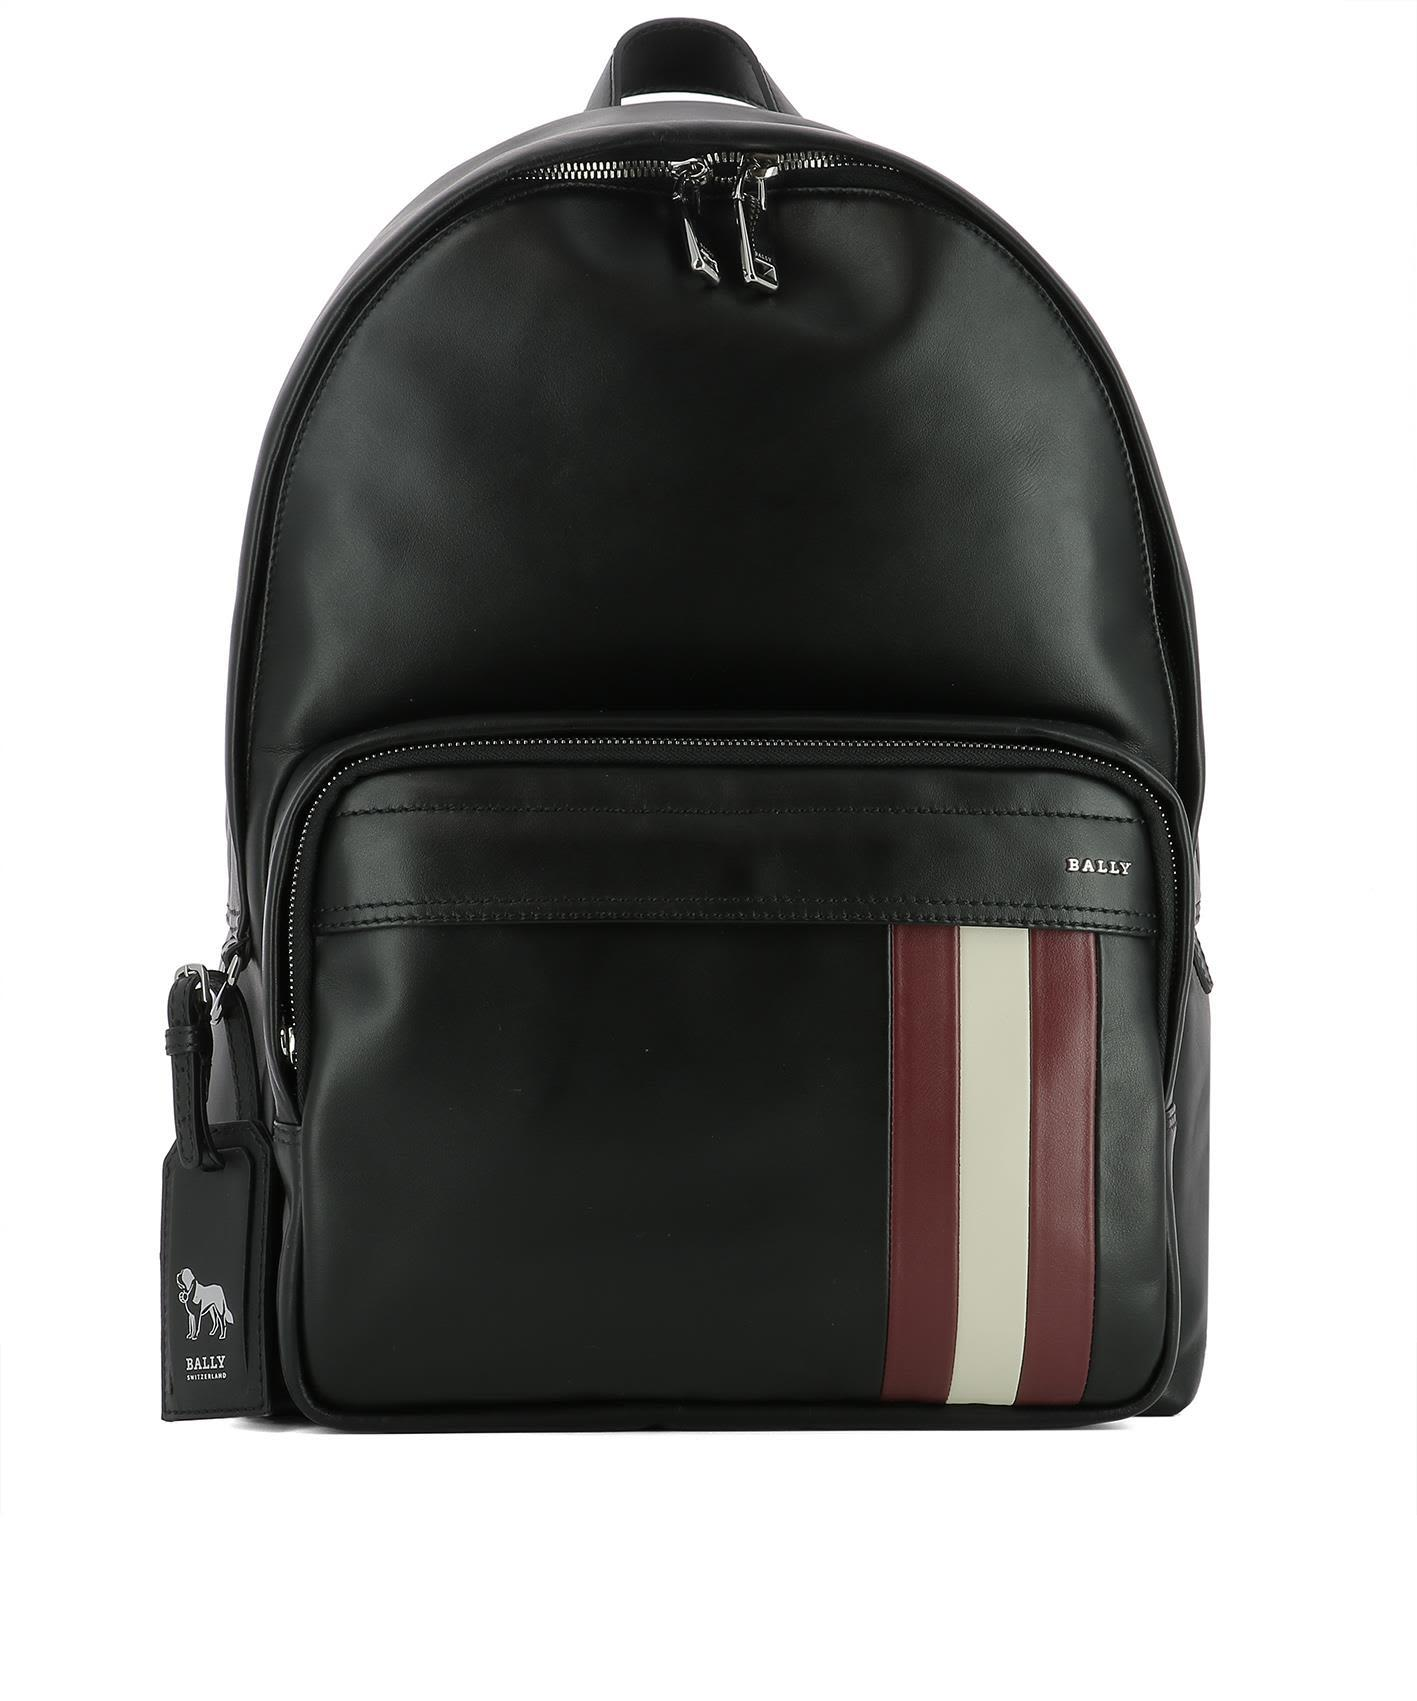 Bally Black Leather Backpack